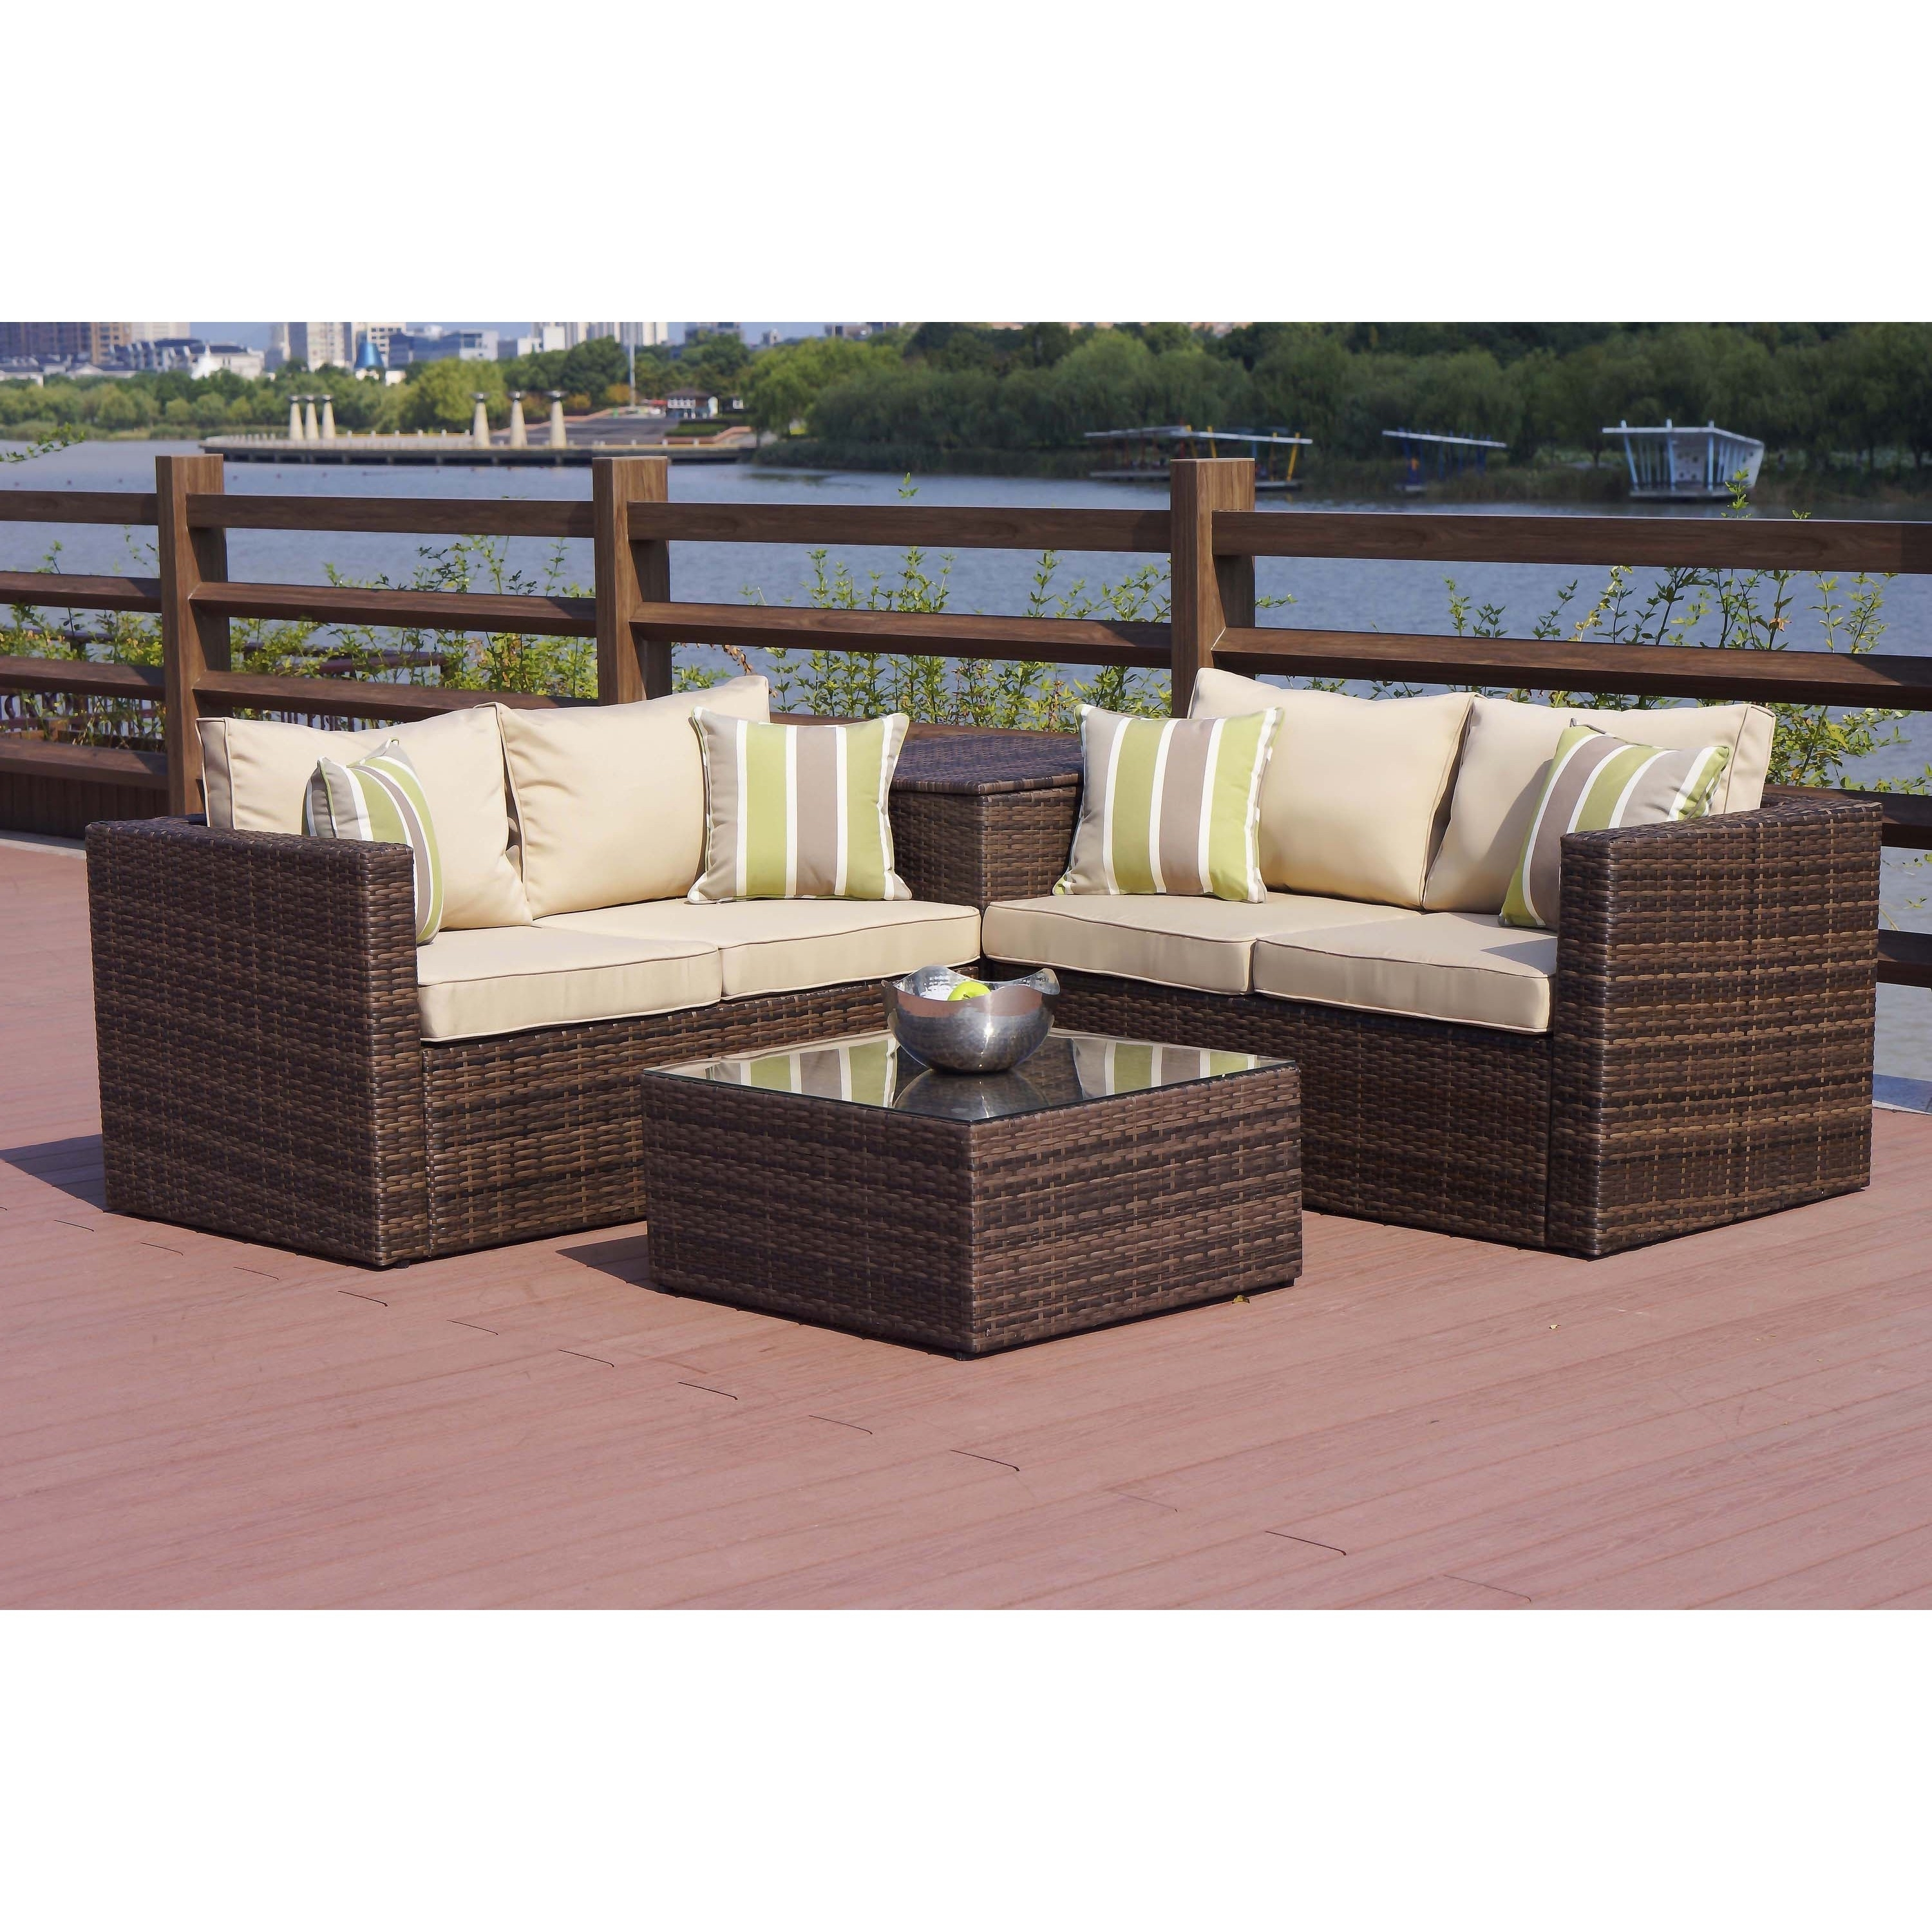 Shop Zoe Outdoor 4 Piece Conversation Set With Storage Box – On Sale Inside Most Current Patio Conversation Set With Storage (View 9 of 20)